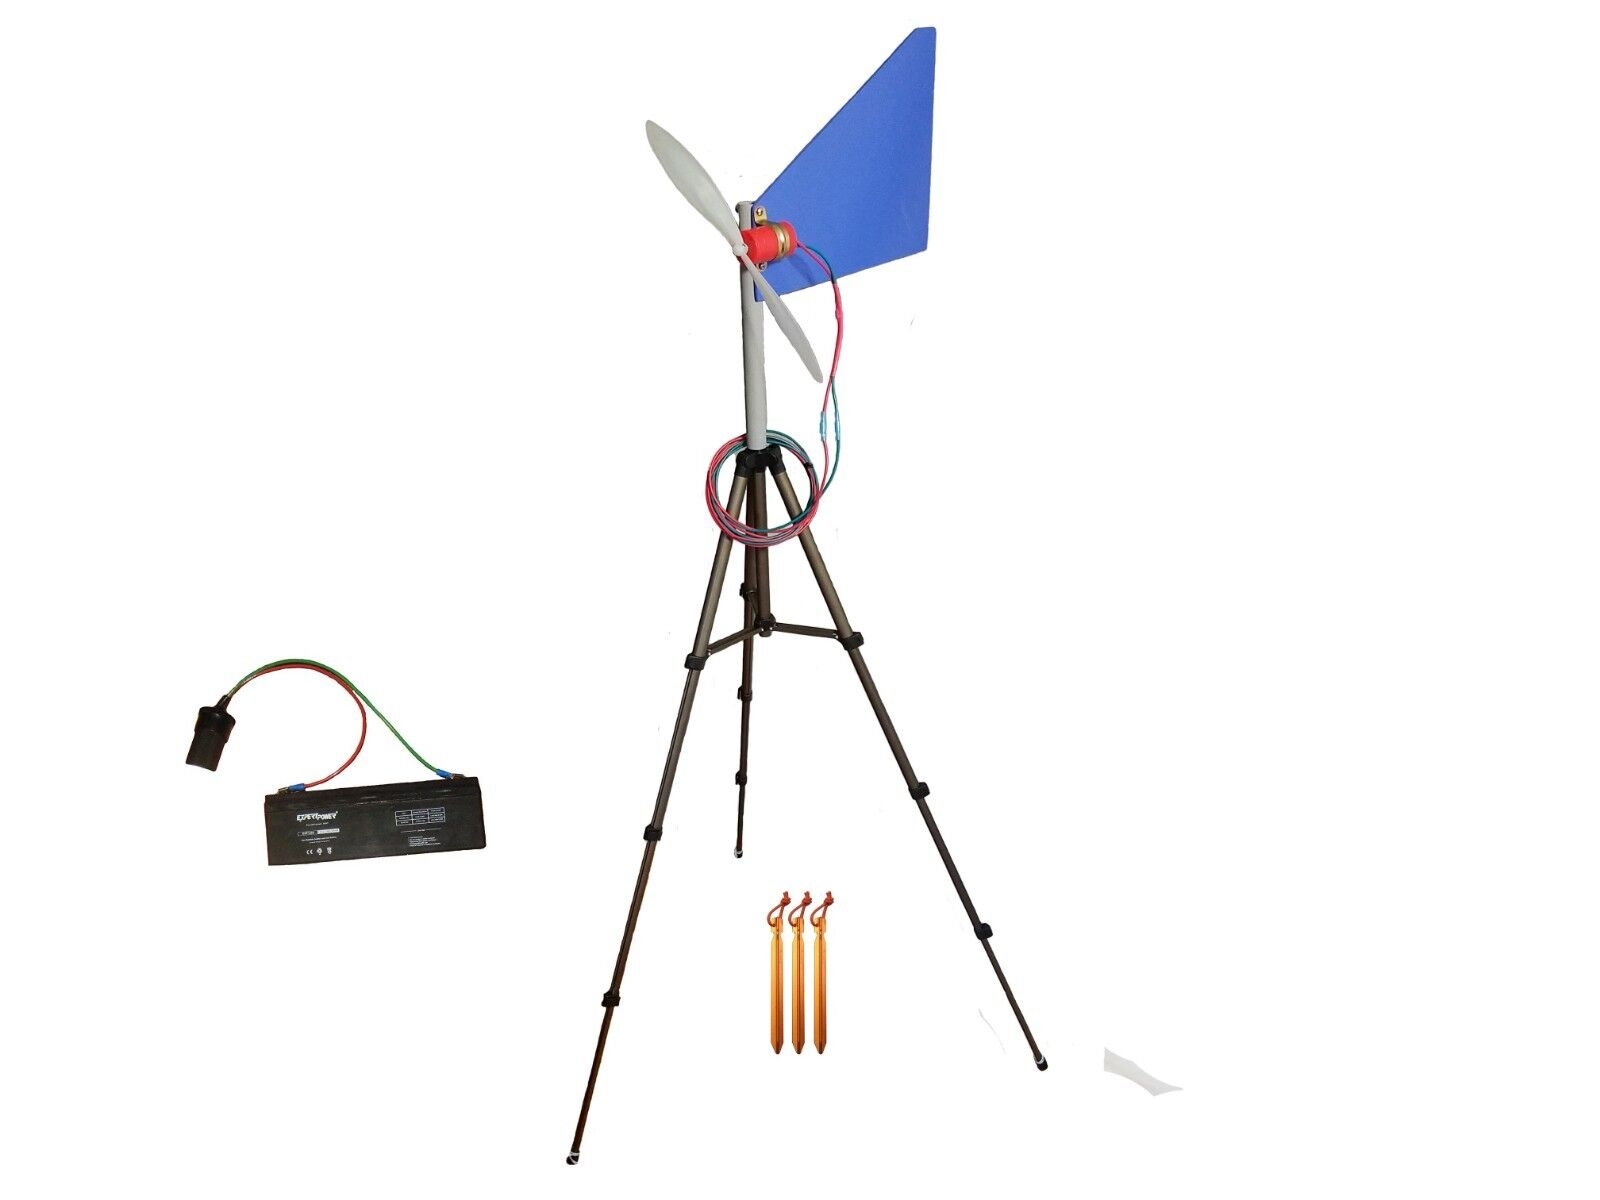 Travel Wind Turbine 12 Volt Generator Kit with Battery